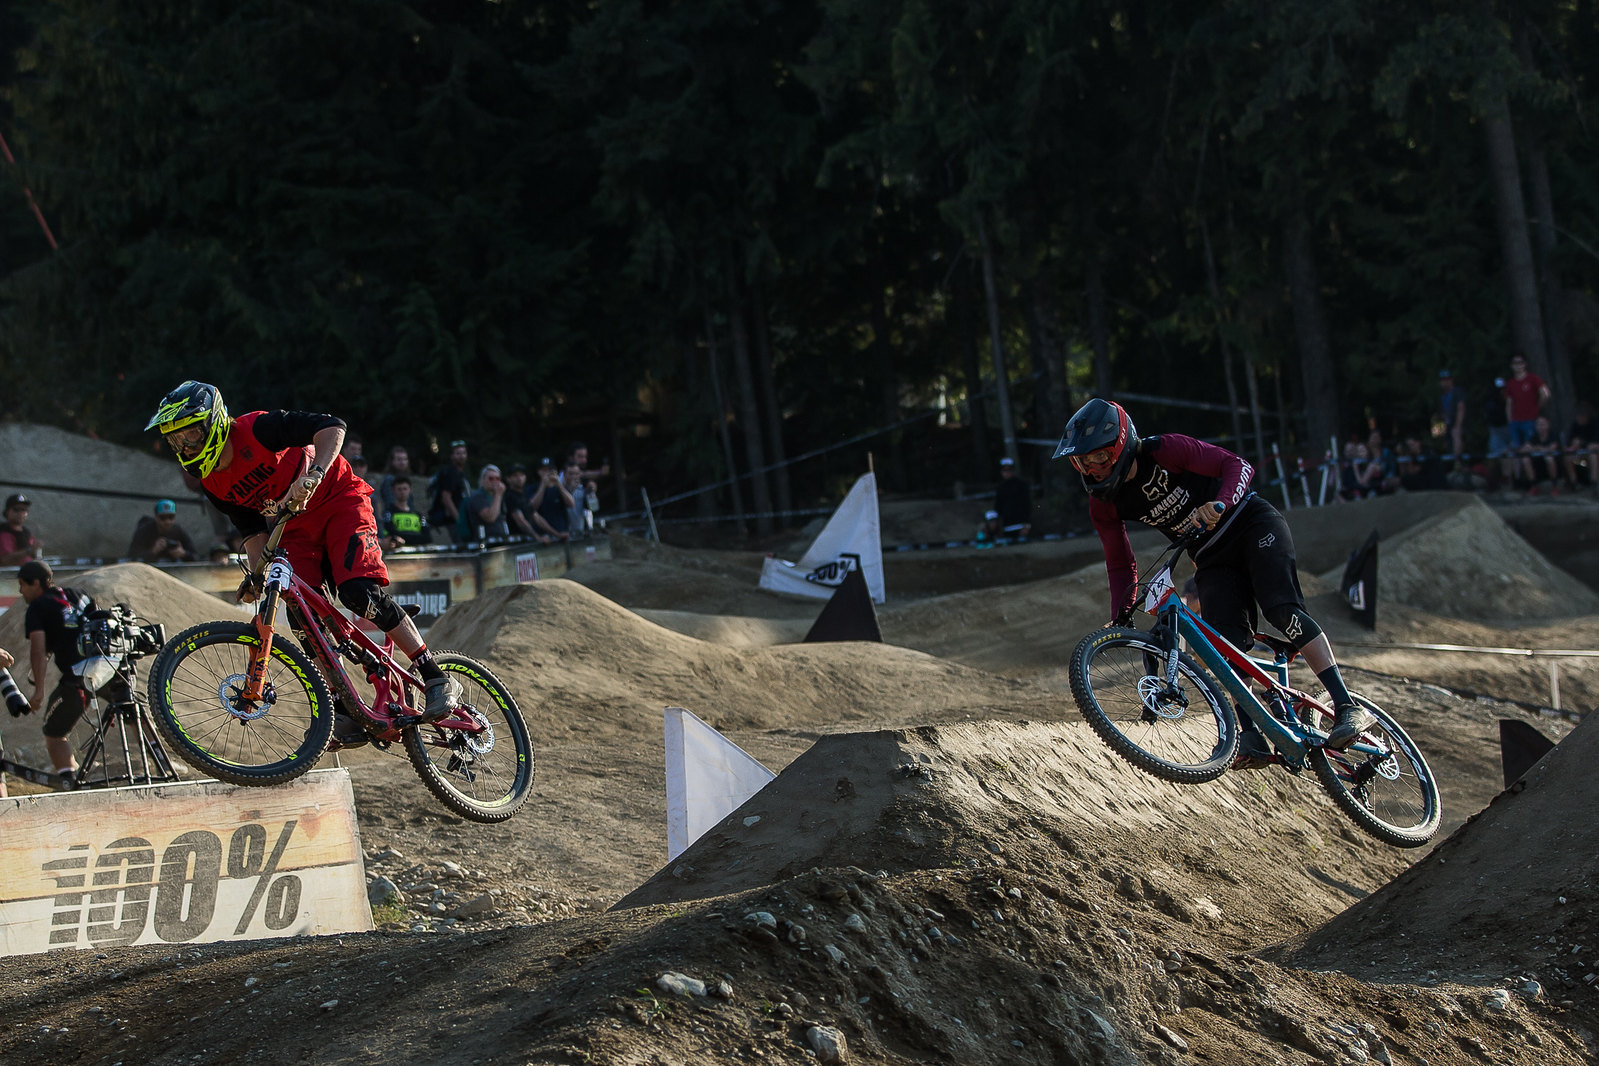 cworx_whistler_pumptrack_144_FBritton_slalom_kerr_wright